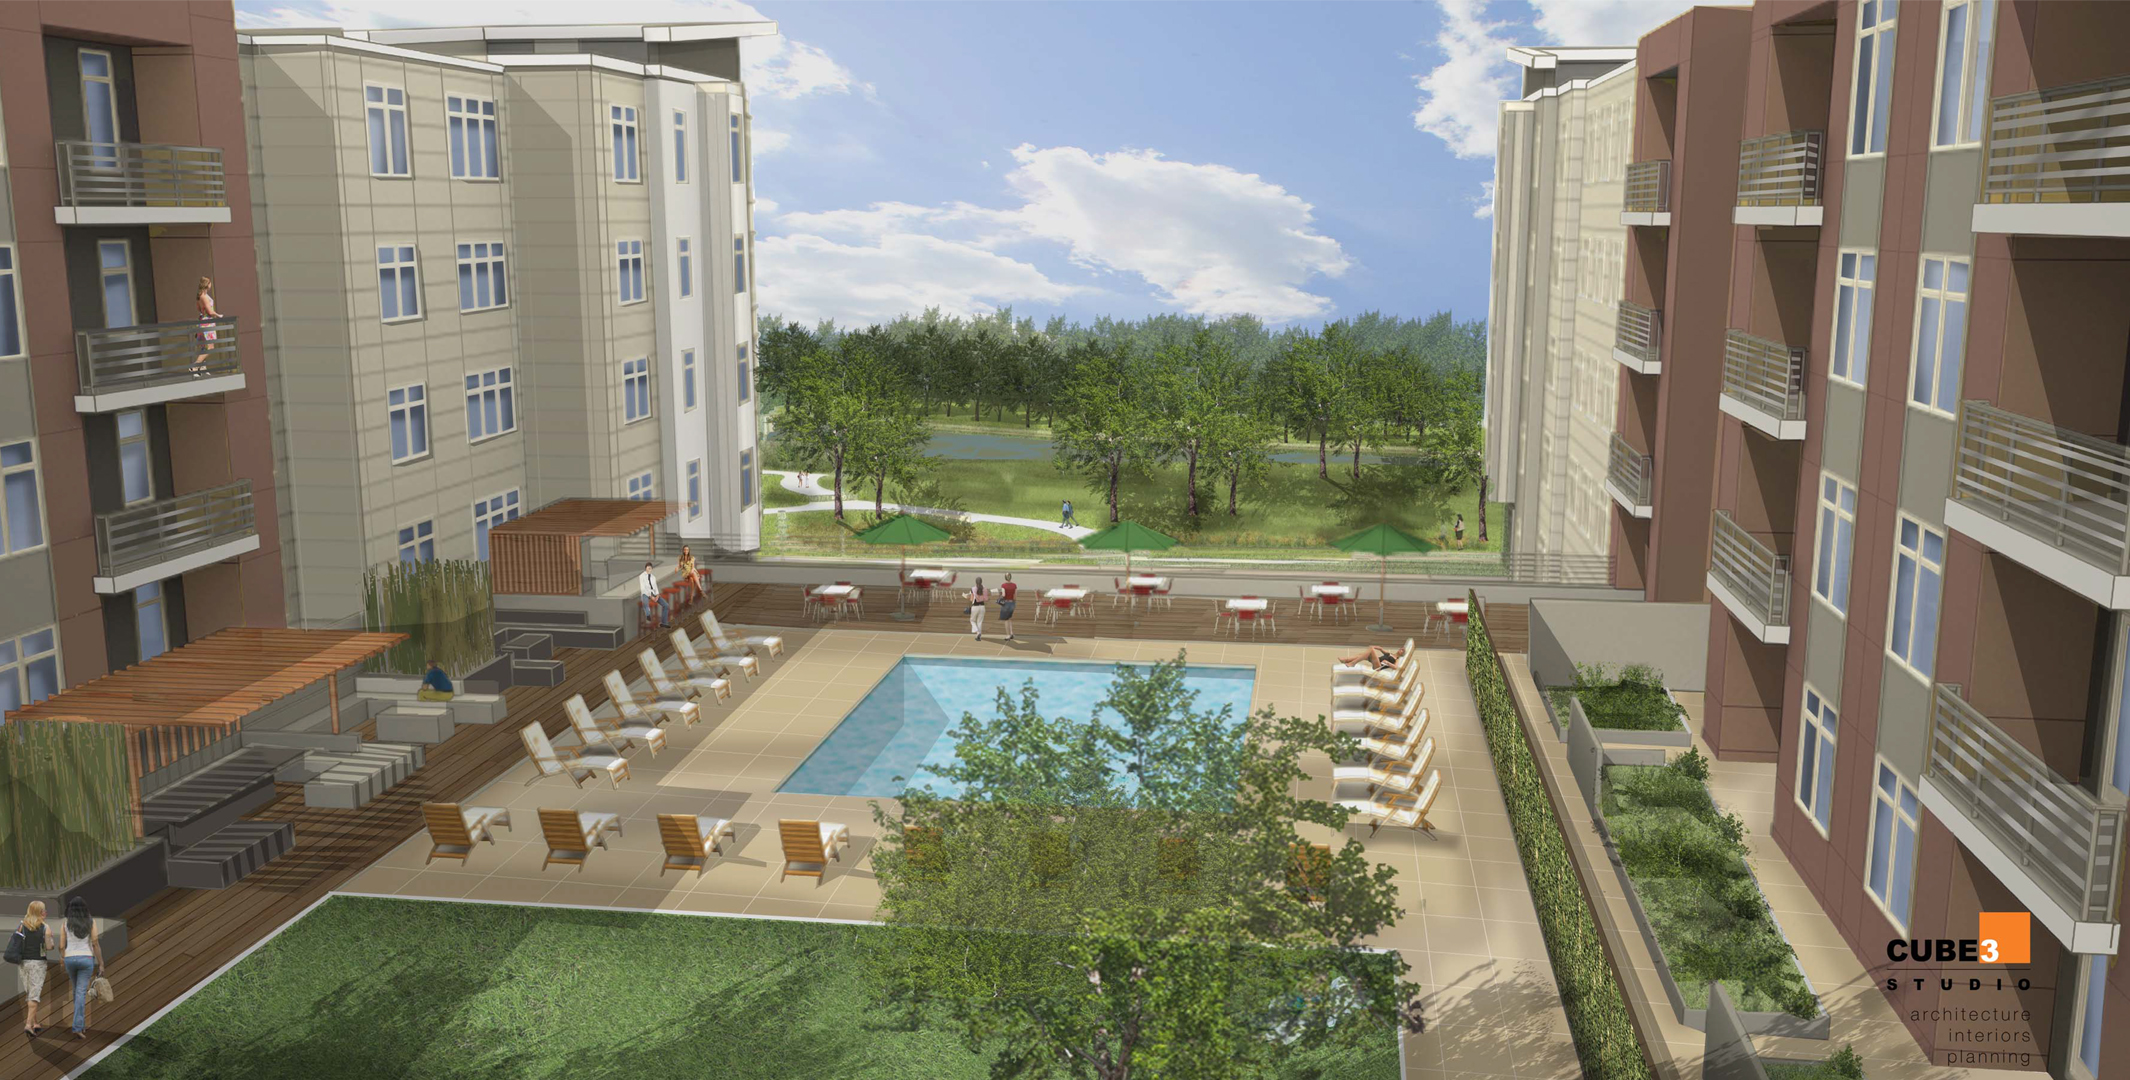 Courtyard of Acadia on the Charles, a 200-unit luxury apartment project at 36 River St. in Waltham